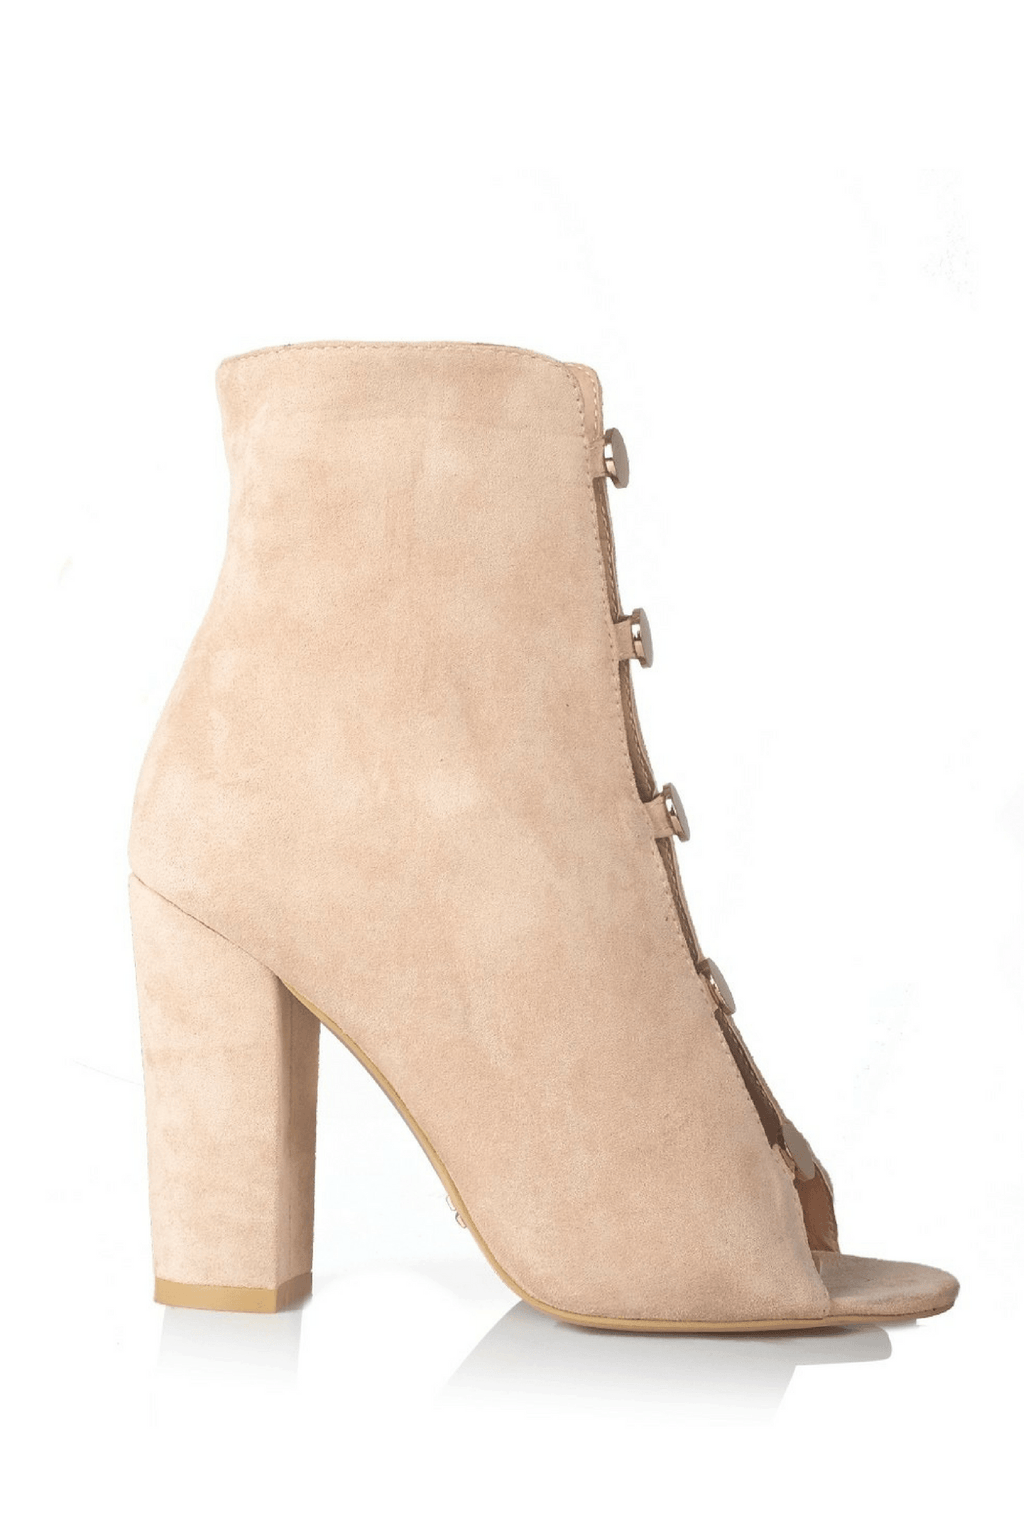 Batista Blush Suede- Billini Shoes